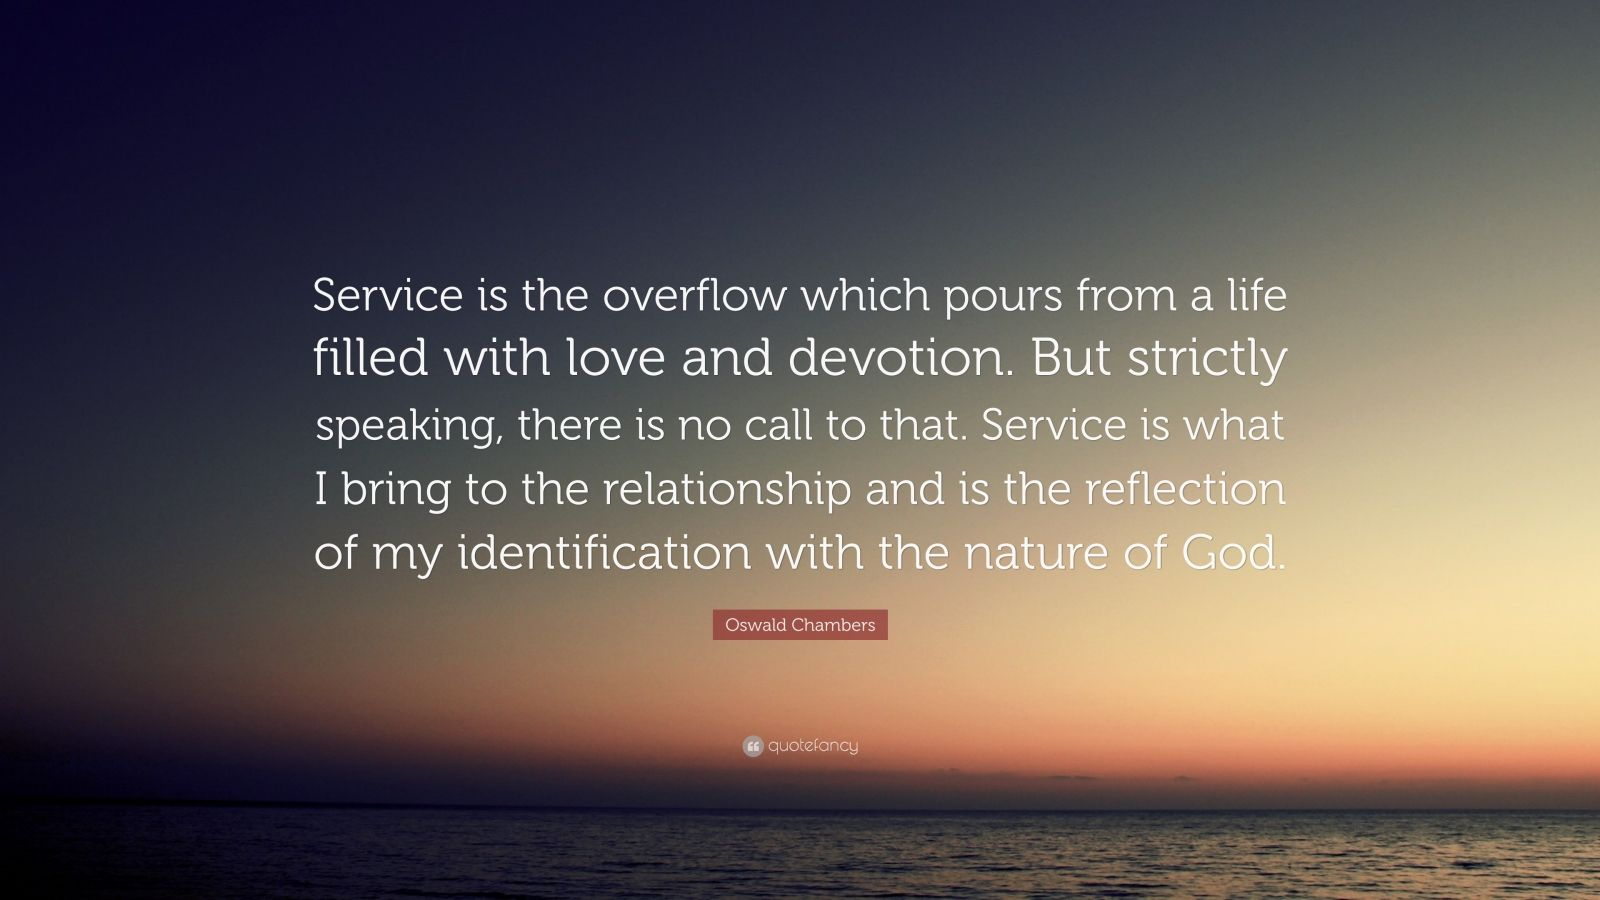 "Oswald Chambers Quote: ""Service is the overflow which pours from a life filled with love and devotion. But strictly speaking, there is no call to that. Service is what I bring to the relationship and is the reflection of my identification with the nature of God."""